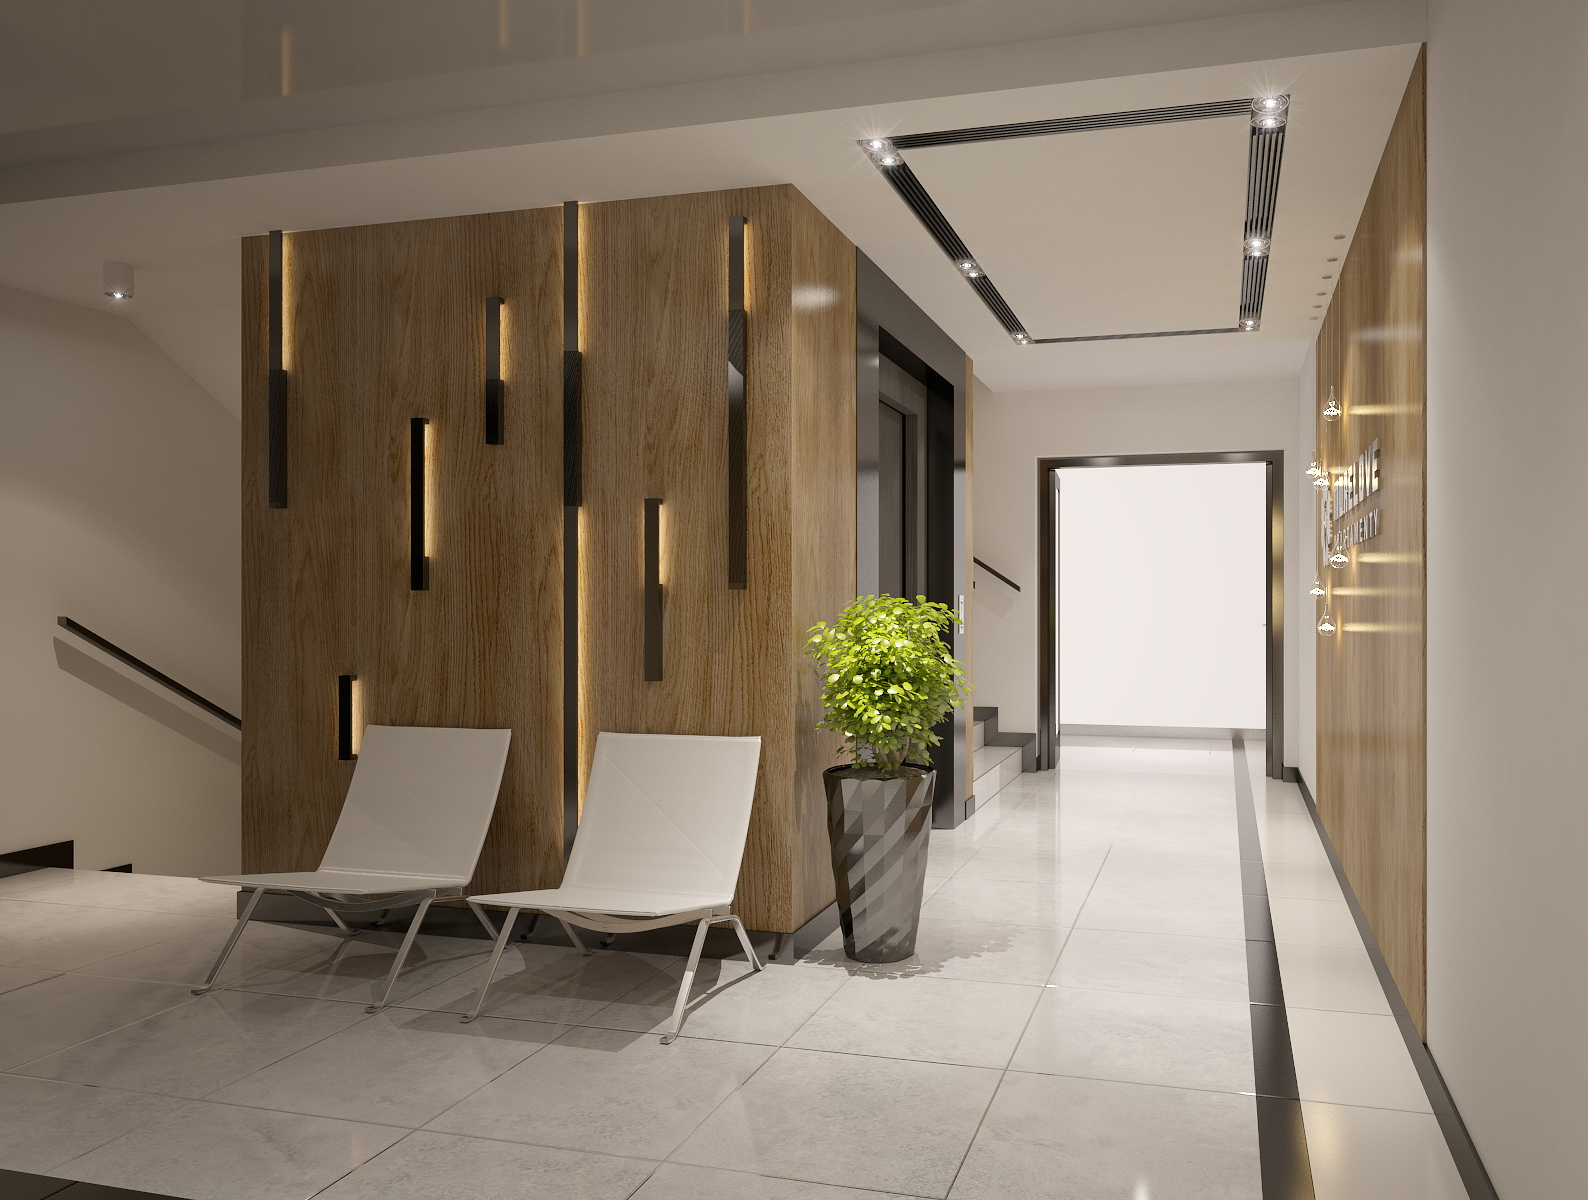 Interior design of Apartments building Entrance Ha 3d model 0